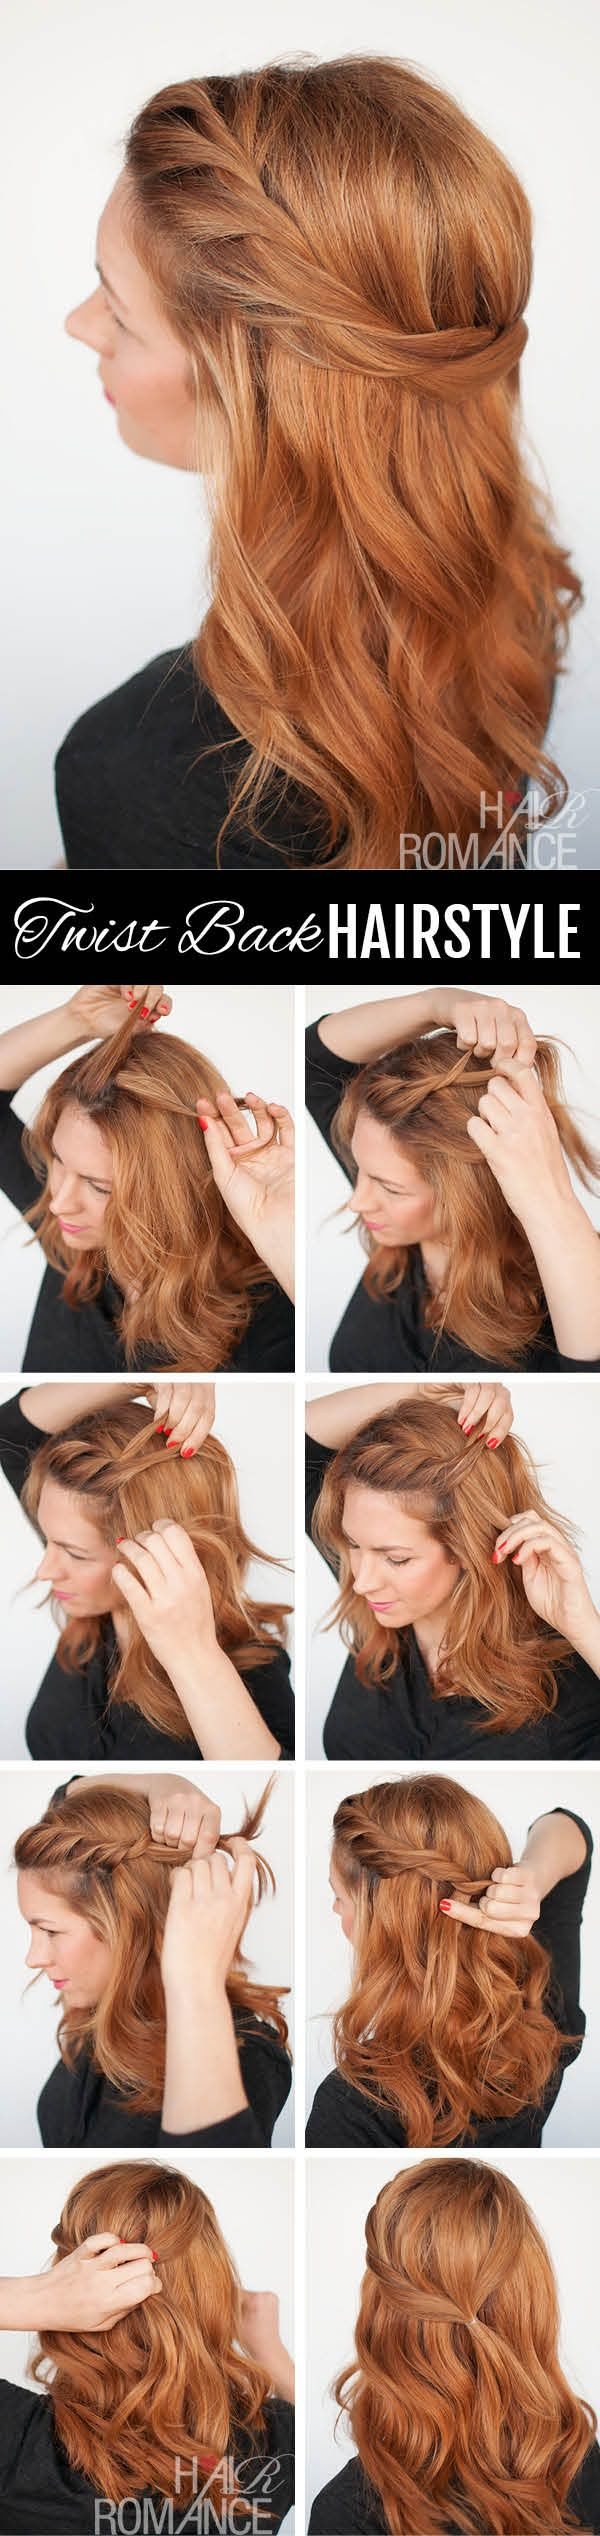 Easy half-up hairstyle.